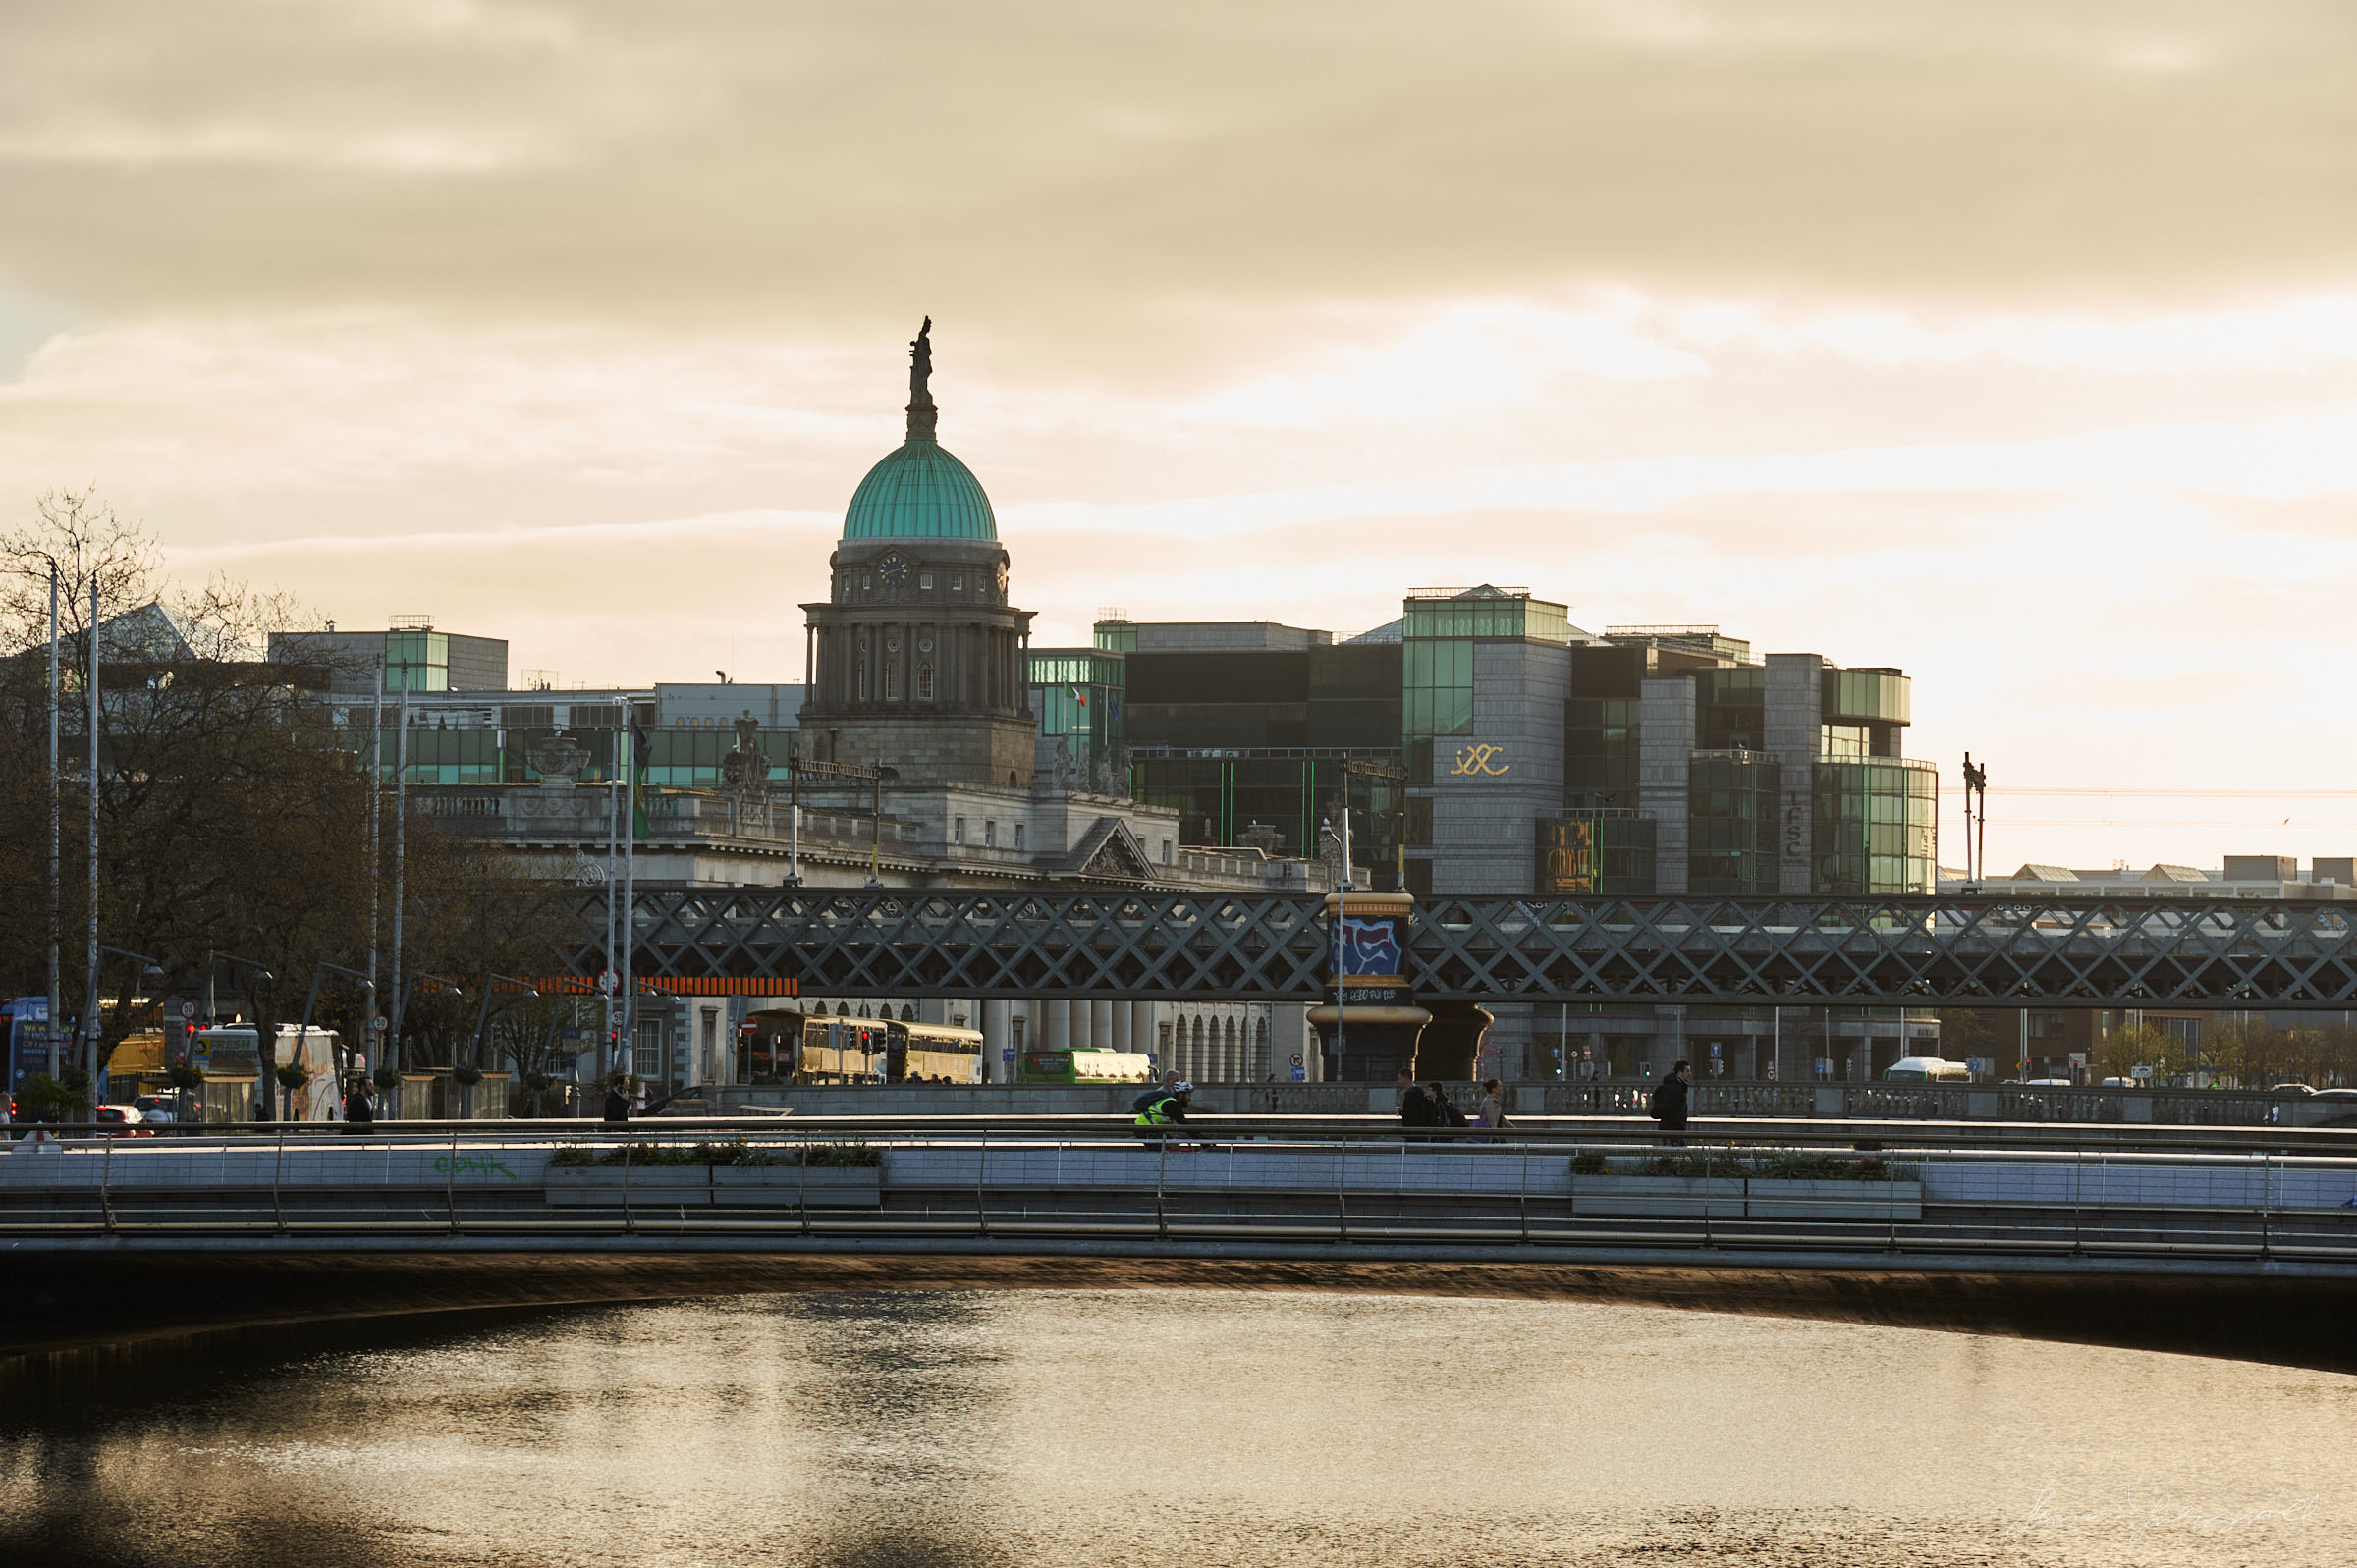 Customs house and the railway bridge over the liffey, early in the morning